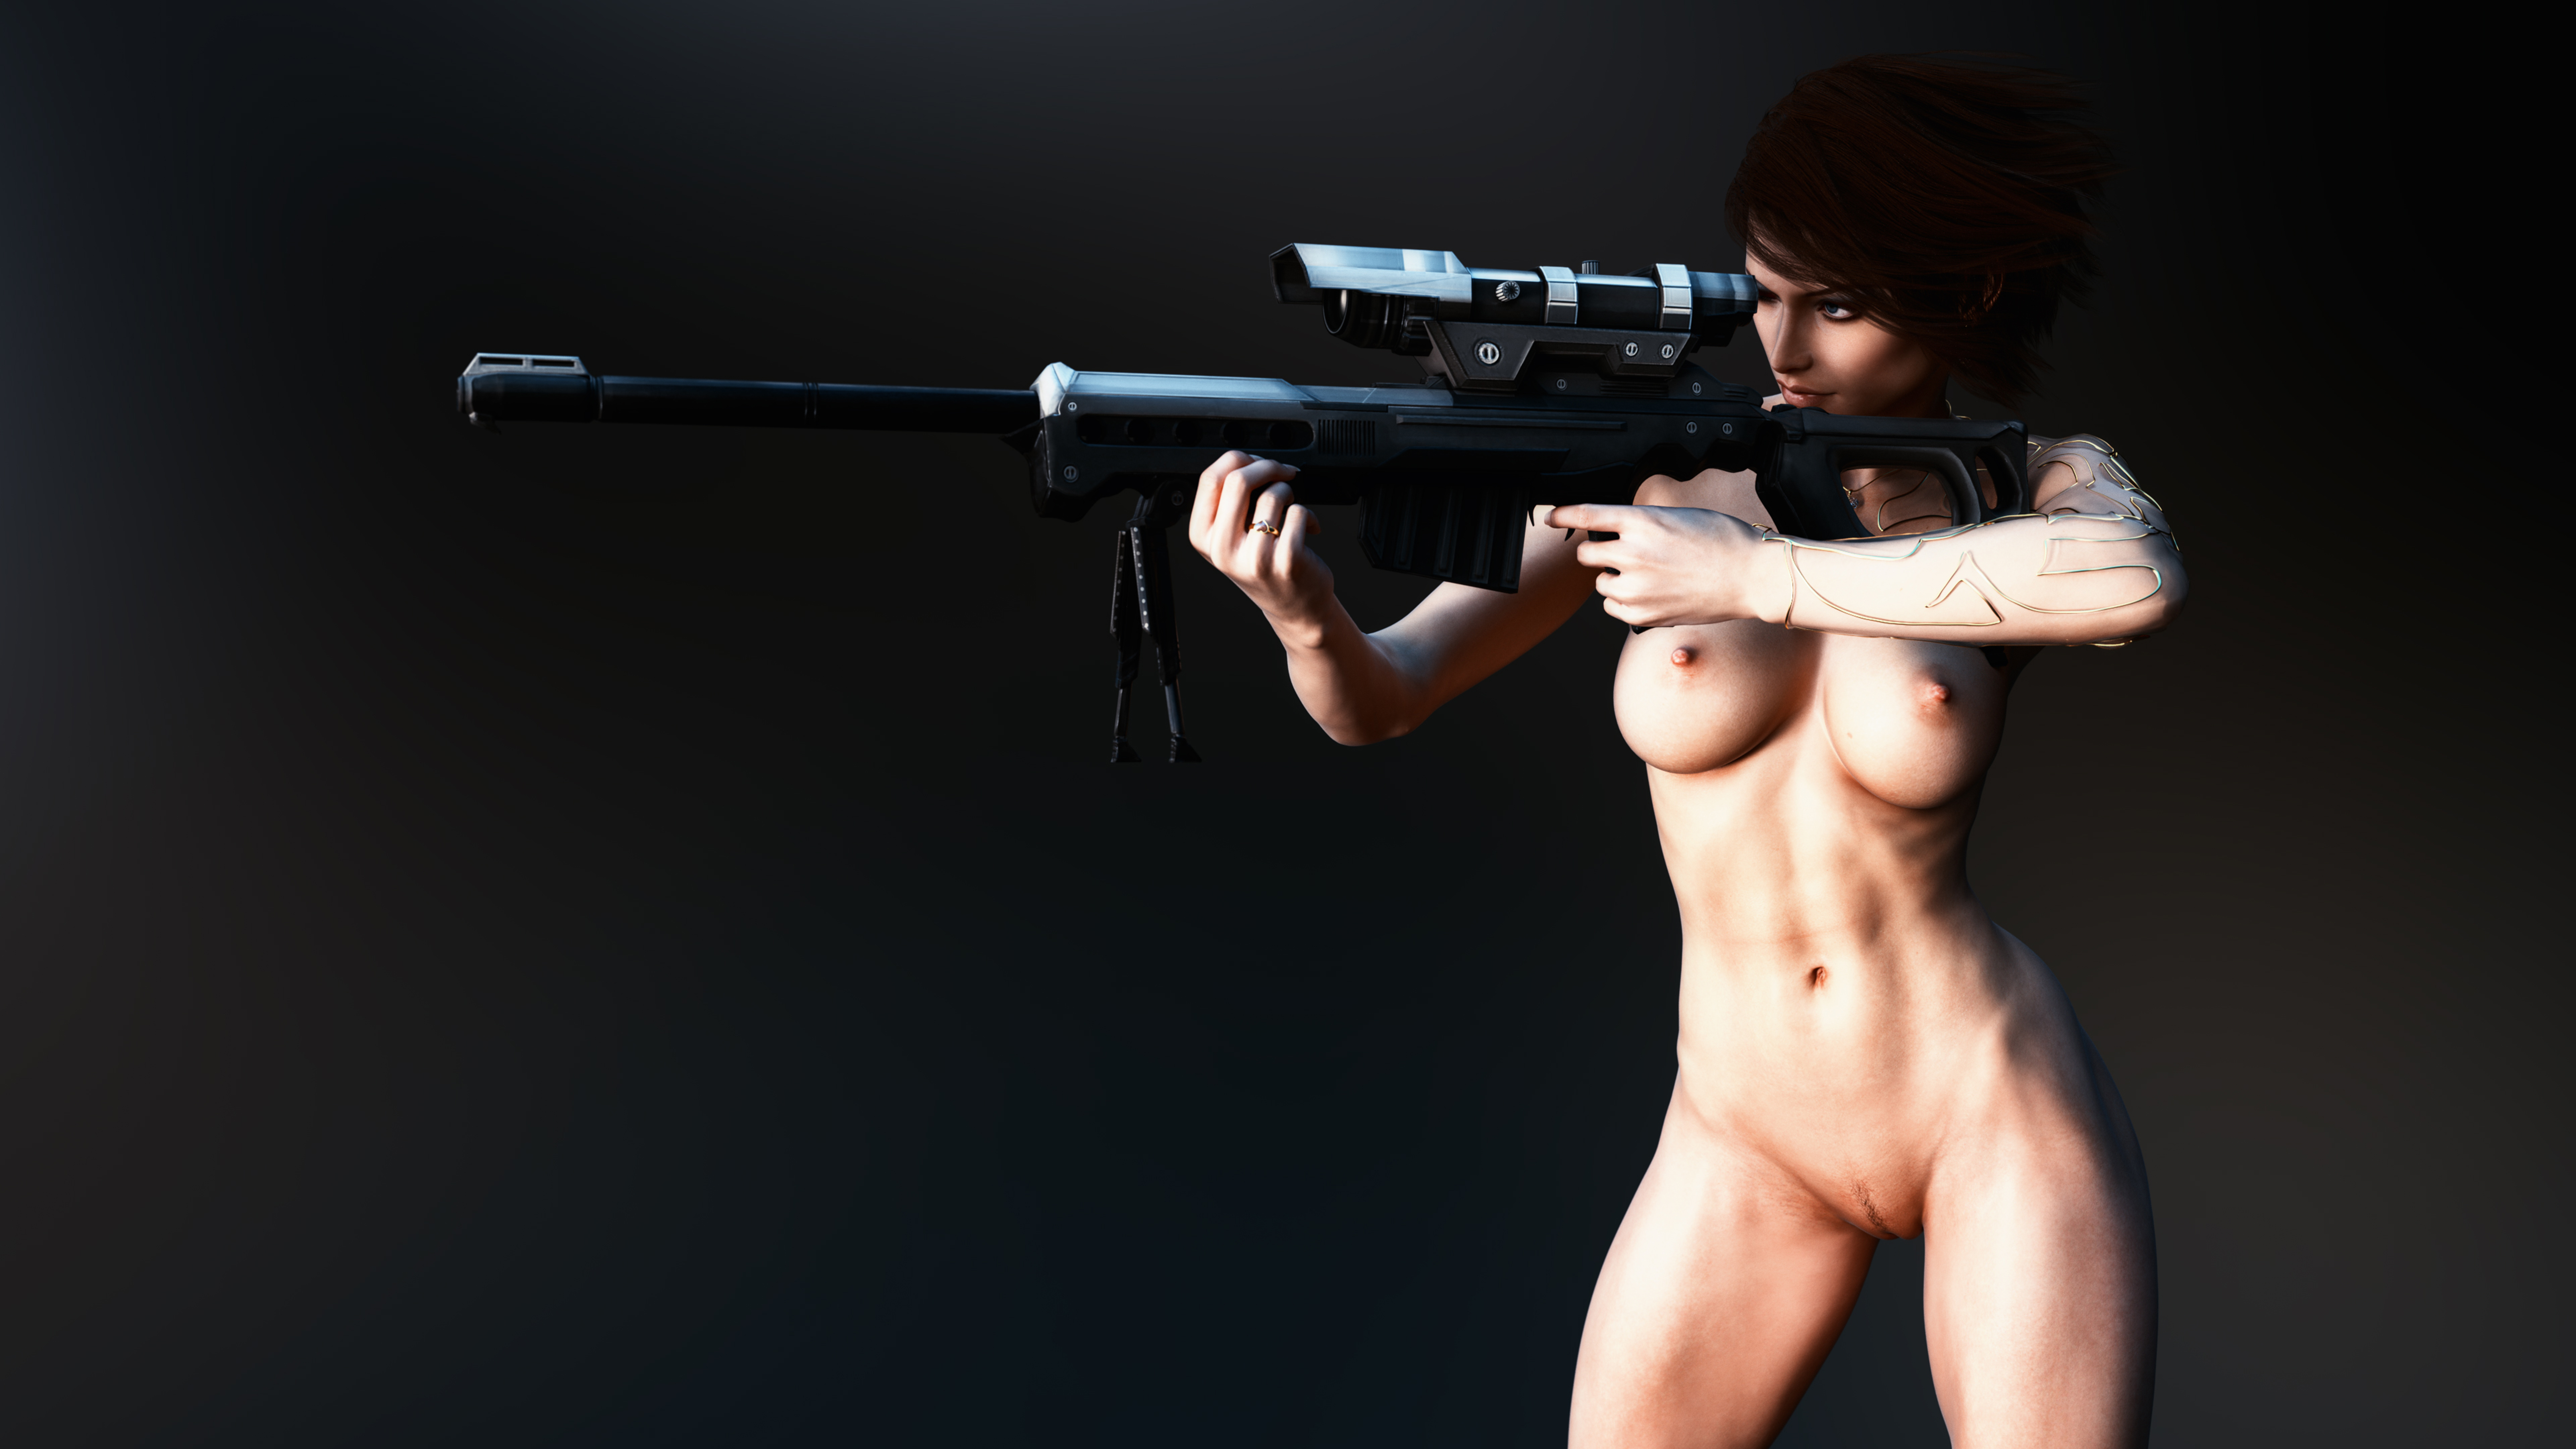 Nude hot wallpaper in 3d sexy photo